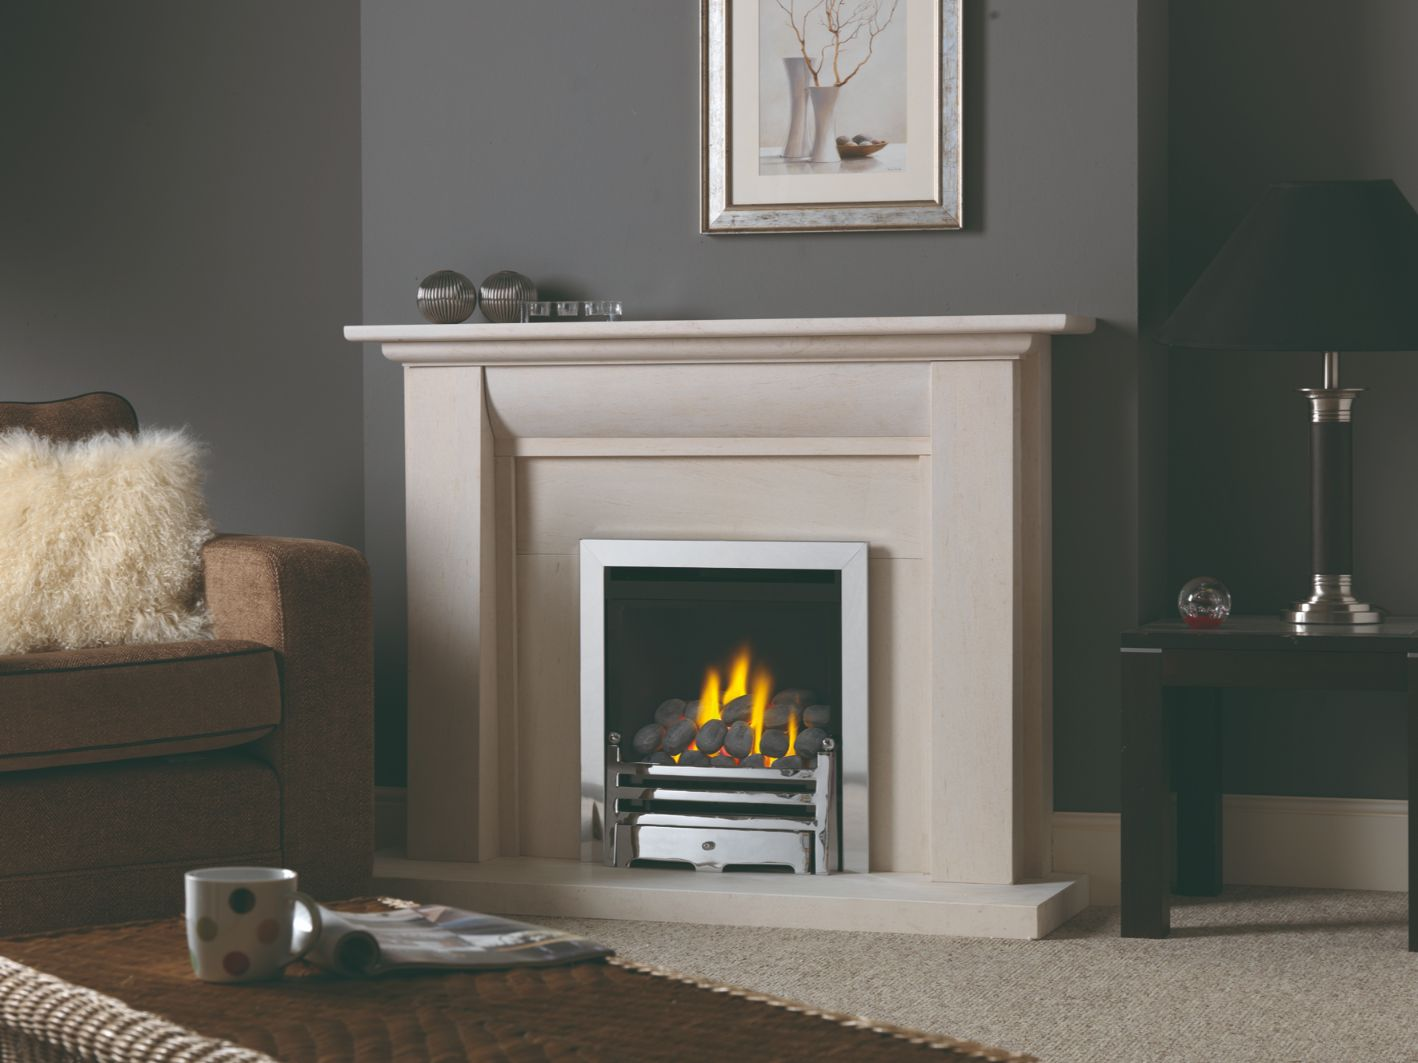 Focus High Efficiency Gas Fire in Portuguese Limestone Gas Fireplace Surround